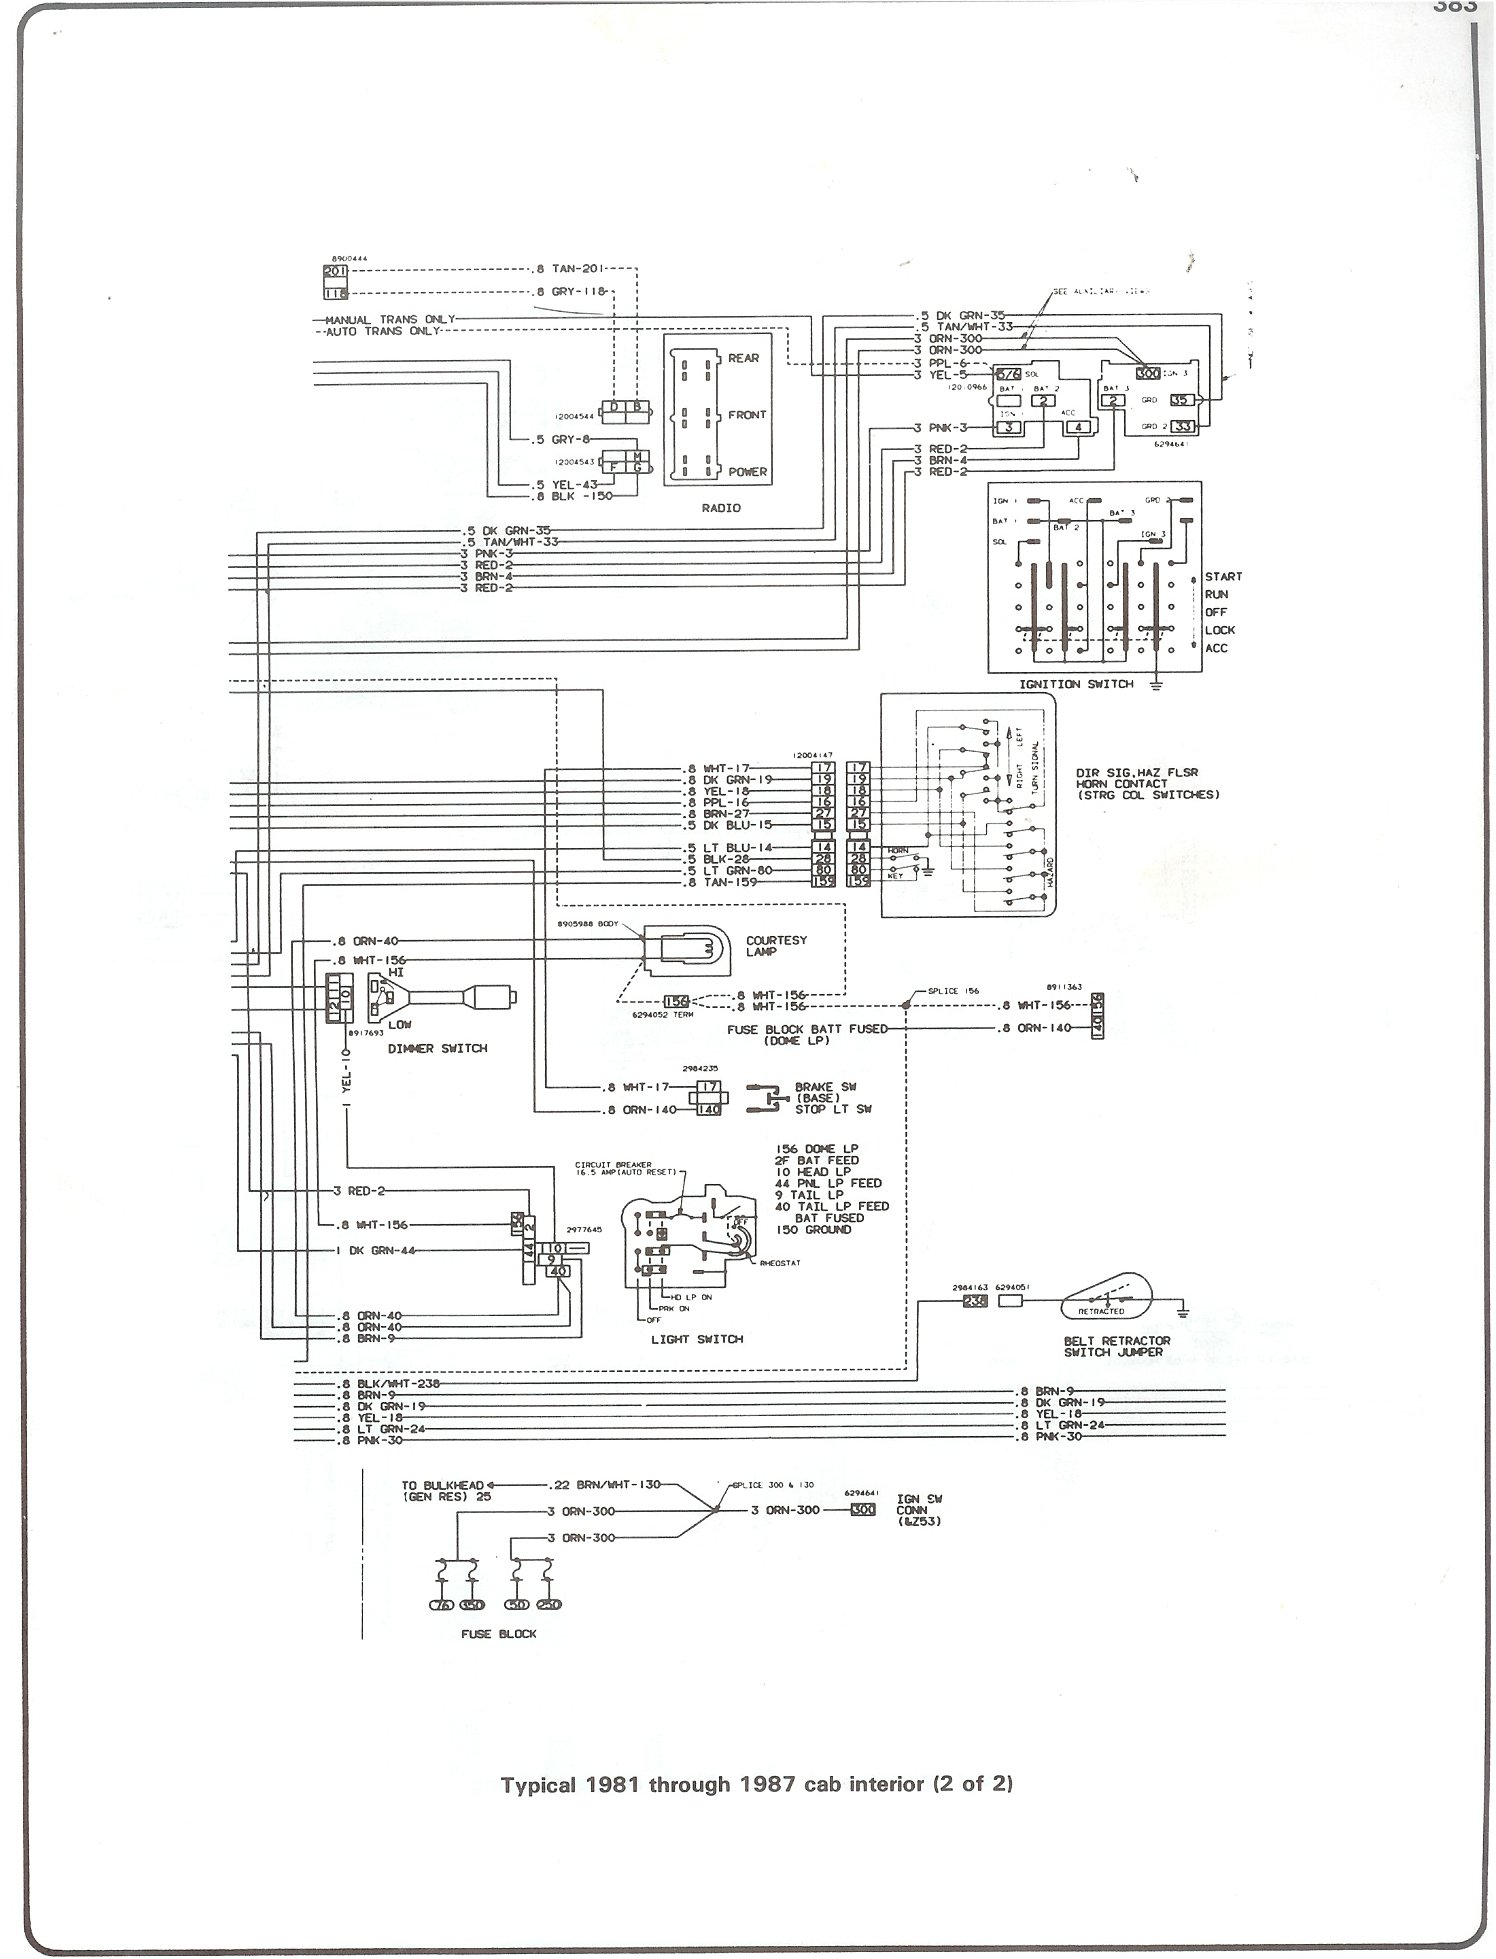 1987 Chevy Blazer Wiring Diagram Library Additionally Ford Fiesta On Vacuum Pump 81 87 Cab Interior Page 2 Complete 73 Diagrams